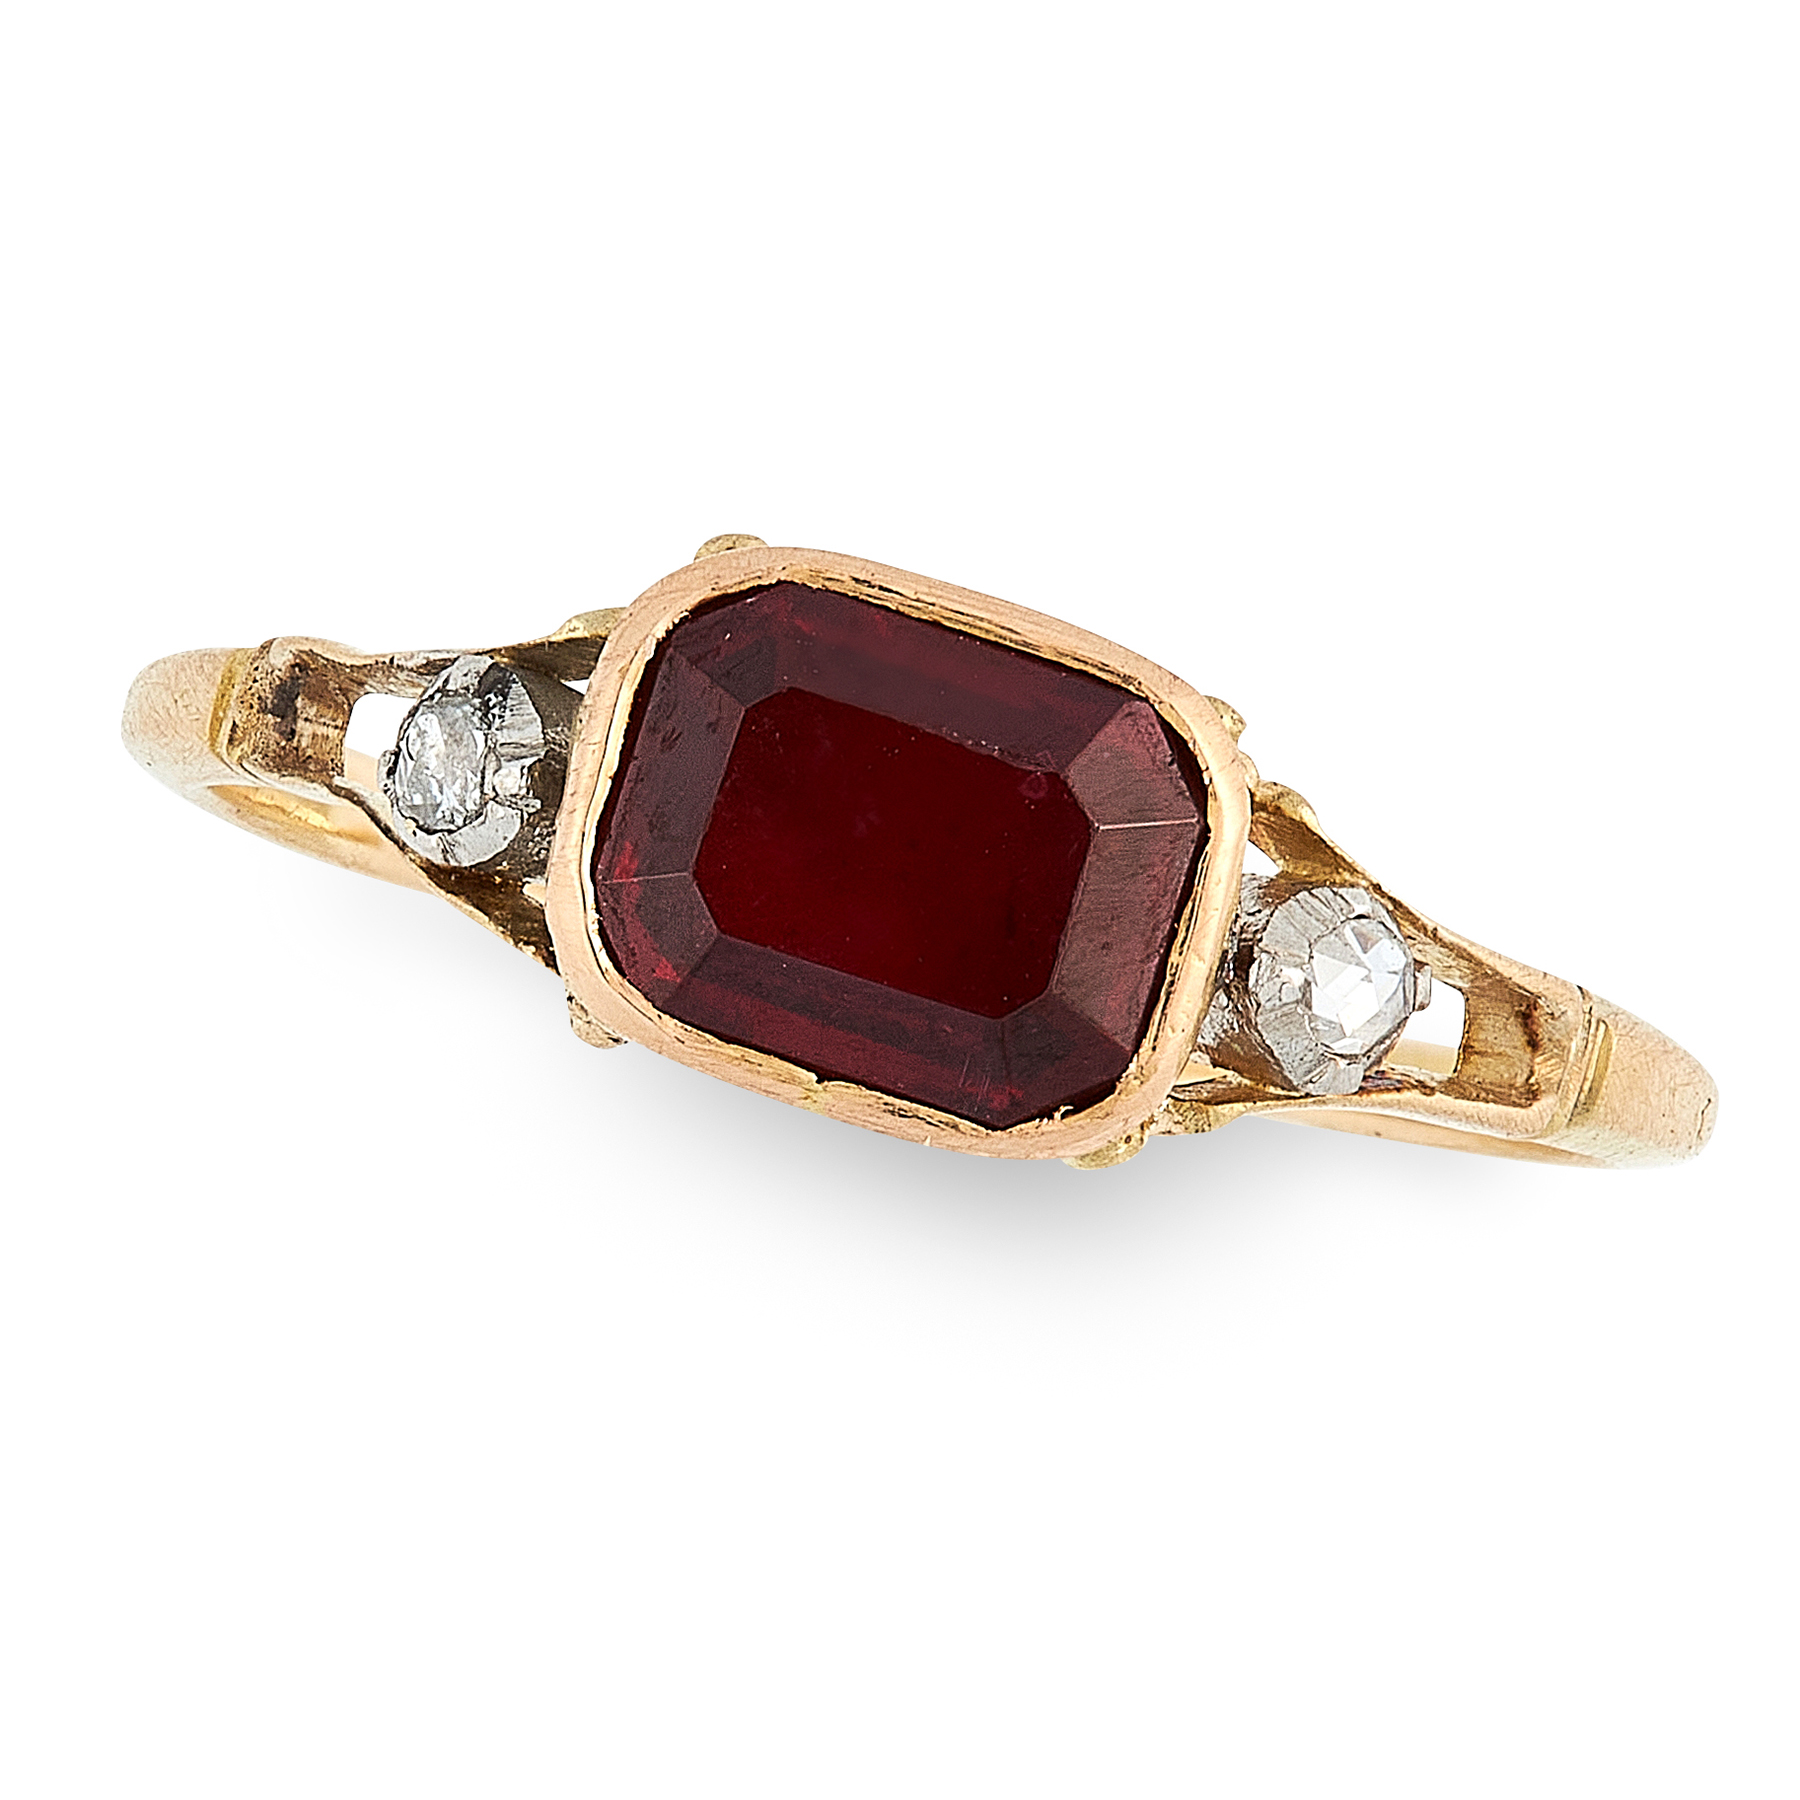 AN ANTIQUE GEORGIAN GARNET AND DIAMOND RING, EARLY 19TH CENTURY in high carat yellow gold, set